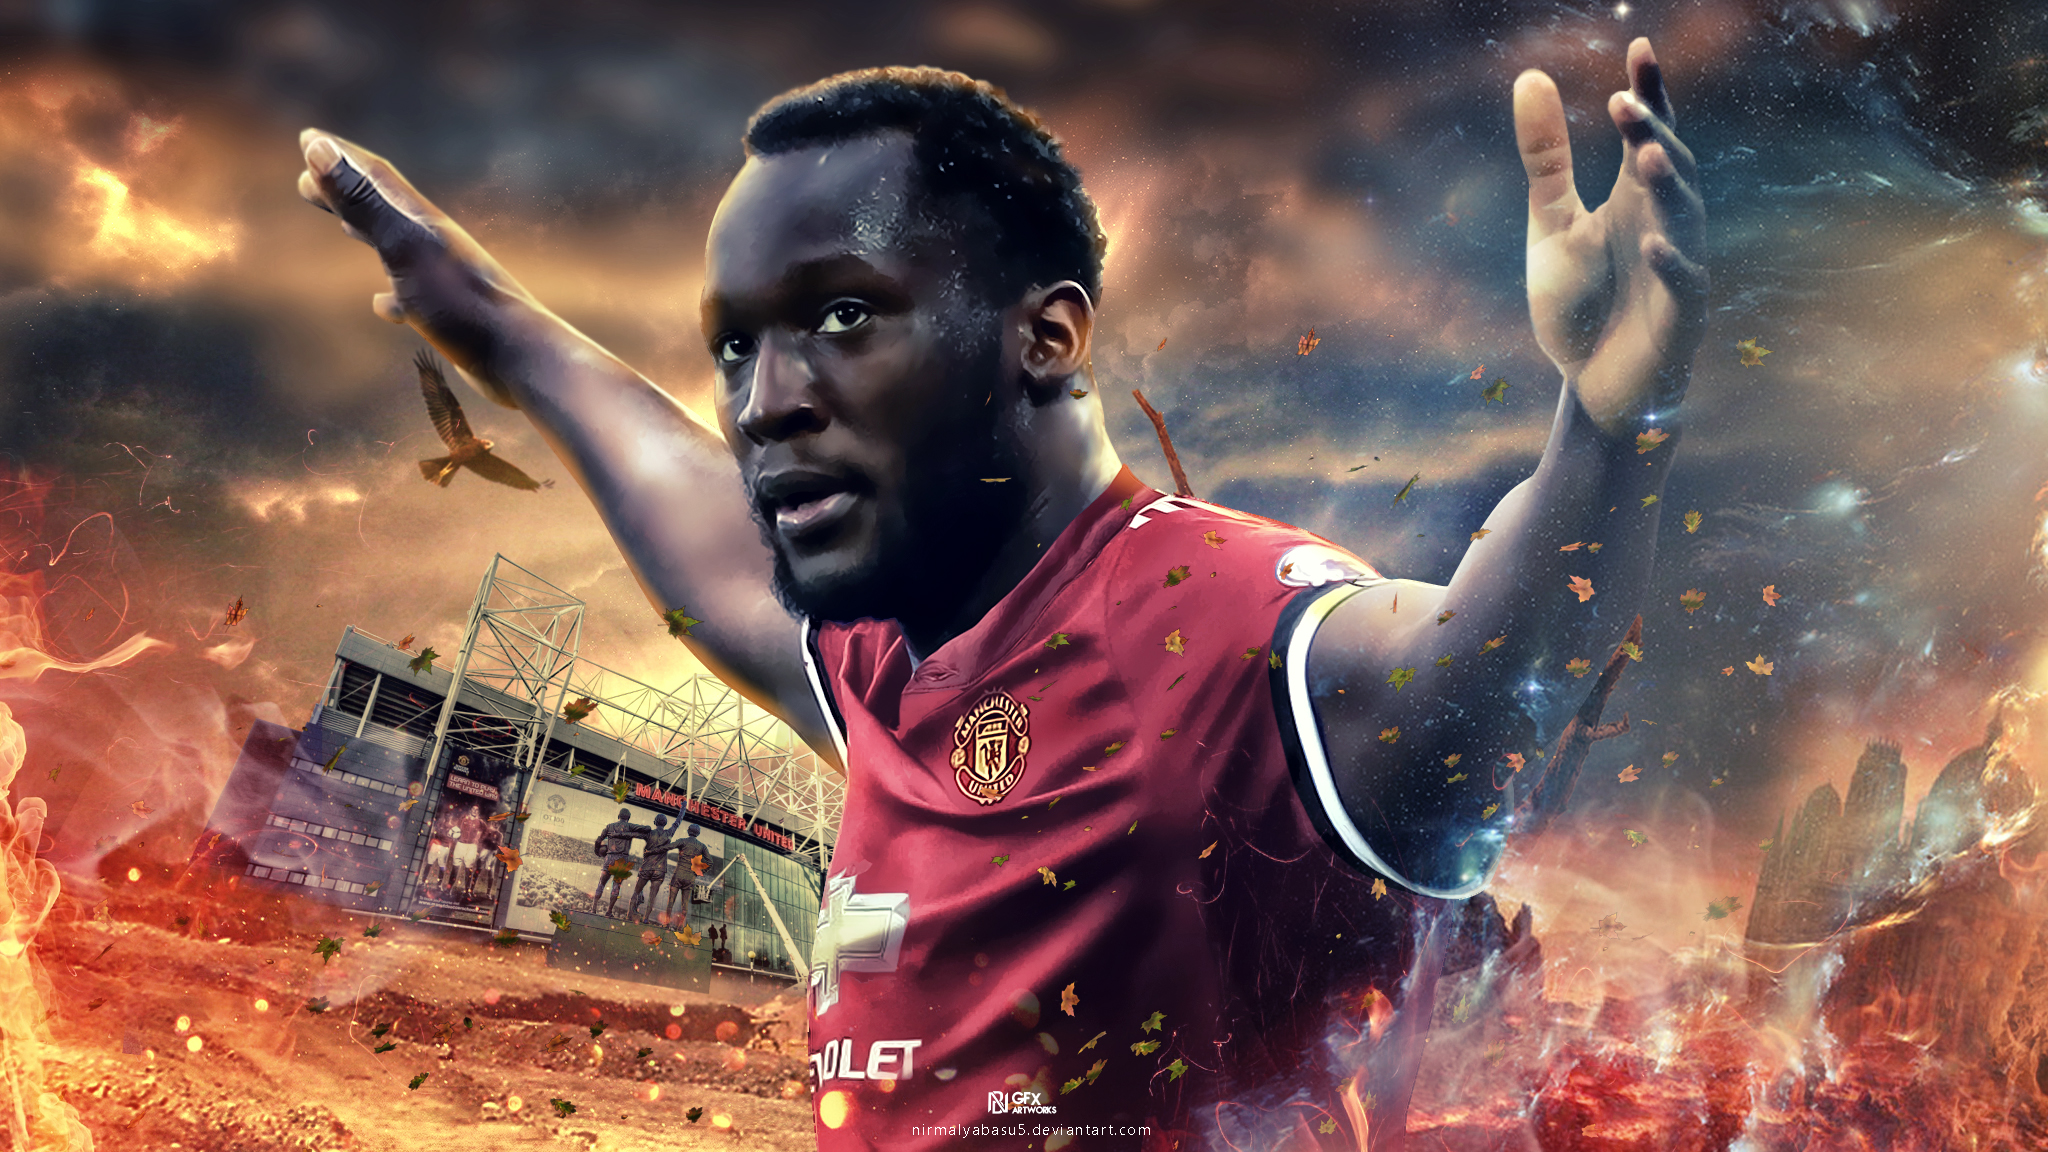 [22+] Lukaku Manchester United Wallpapers On WallpaperSafari